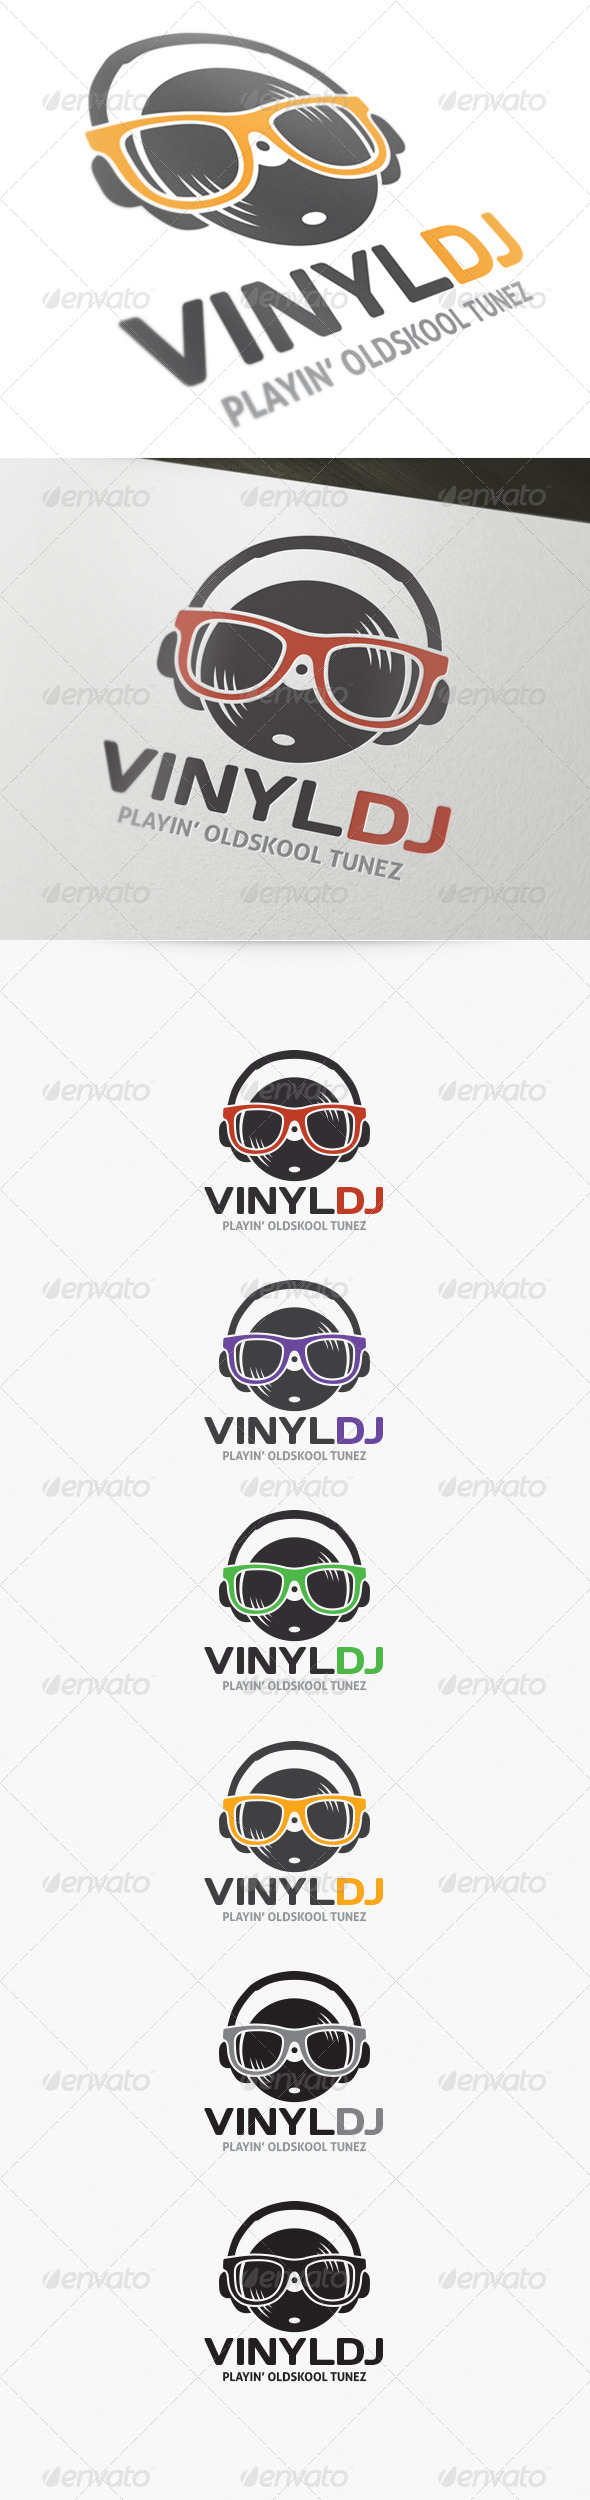 Vinyl DJ Logo - Objects Logo Templates